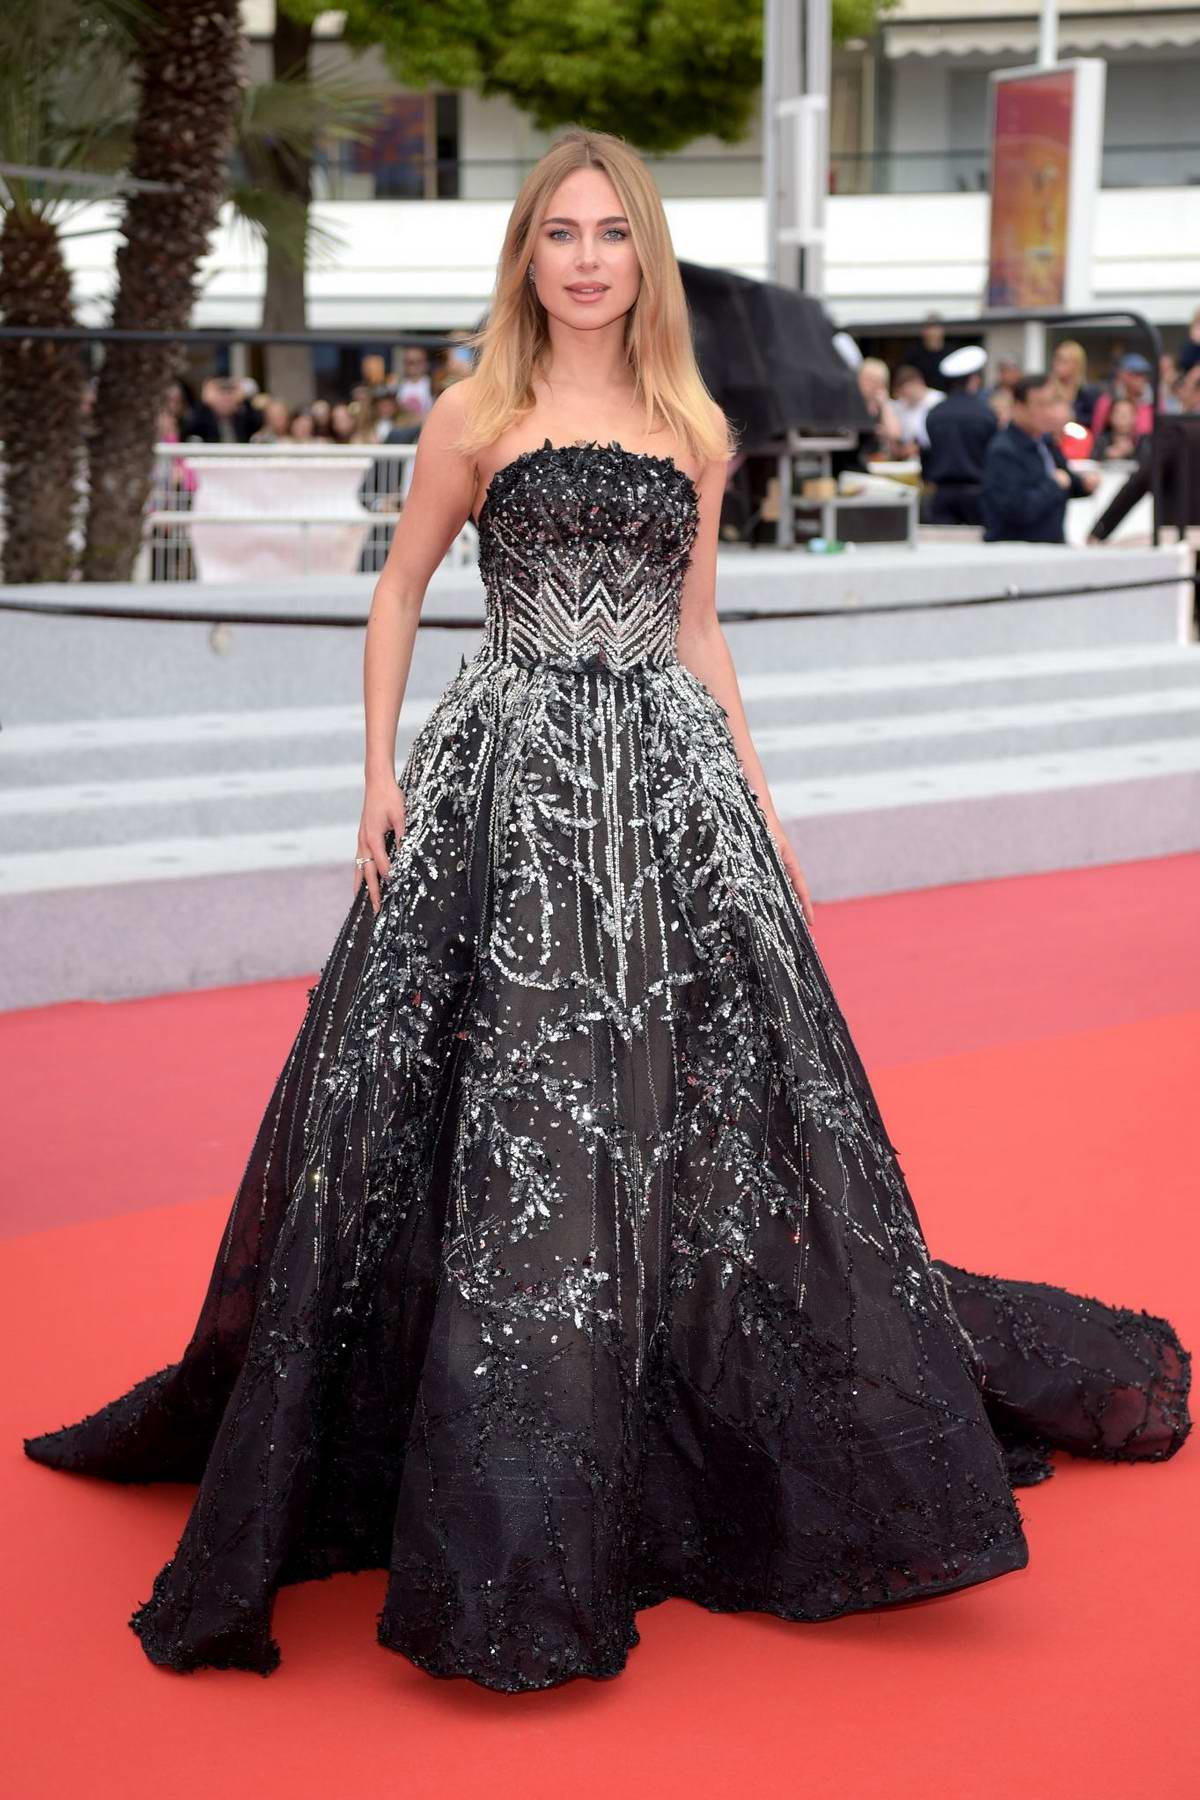 Kimberley Garner attends the screening of 'It Must Be Heaven' during the 72nd annual Cannes Film Festival in Cannes, France